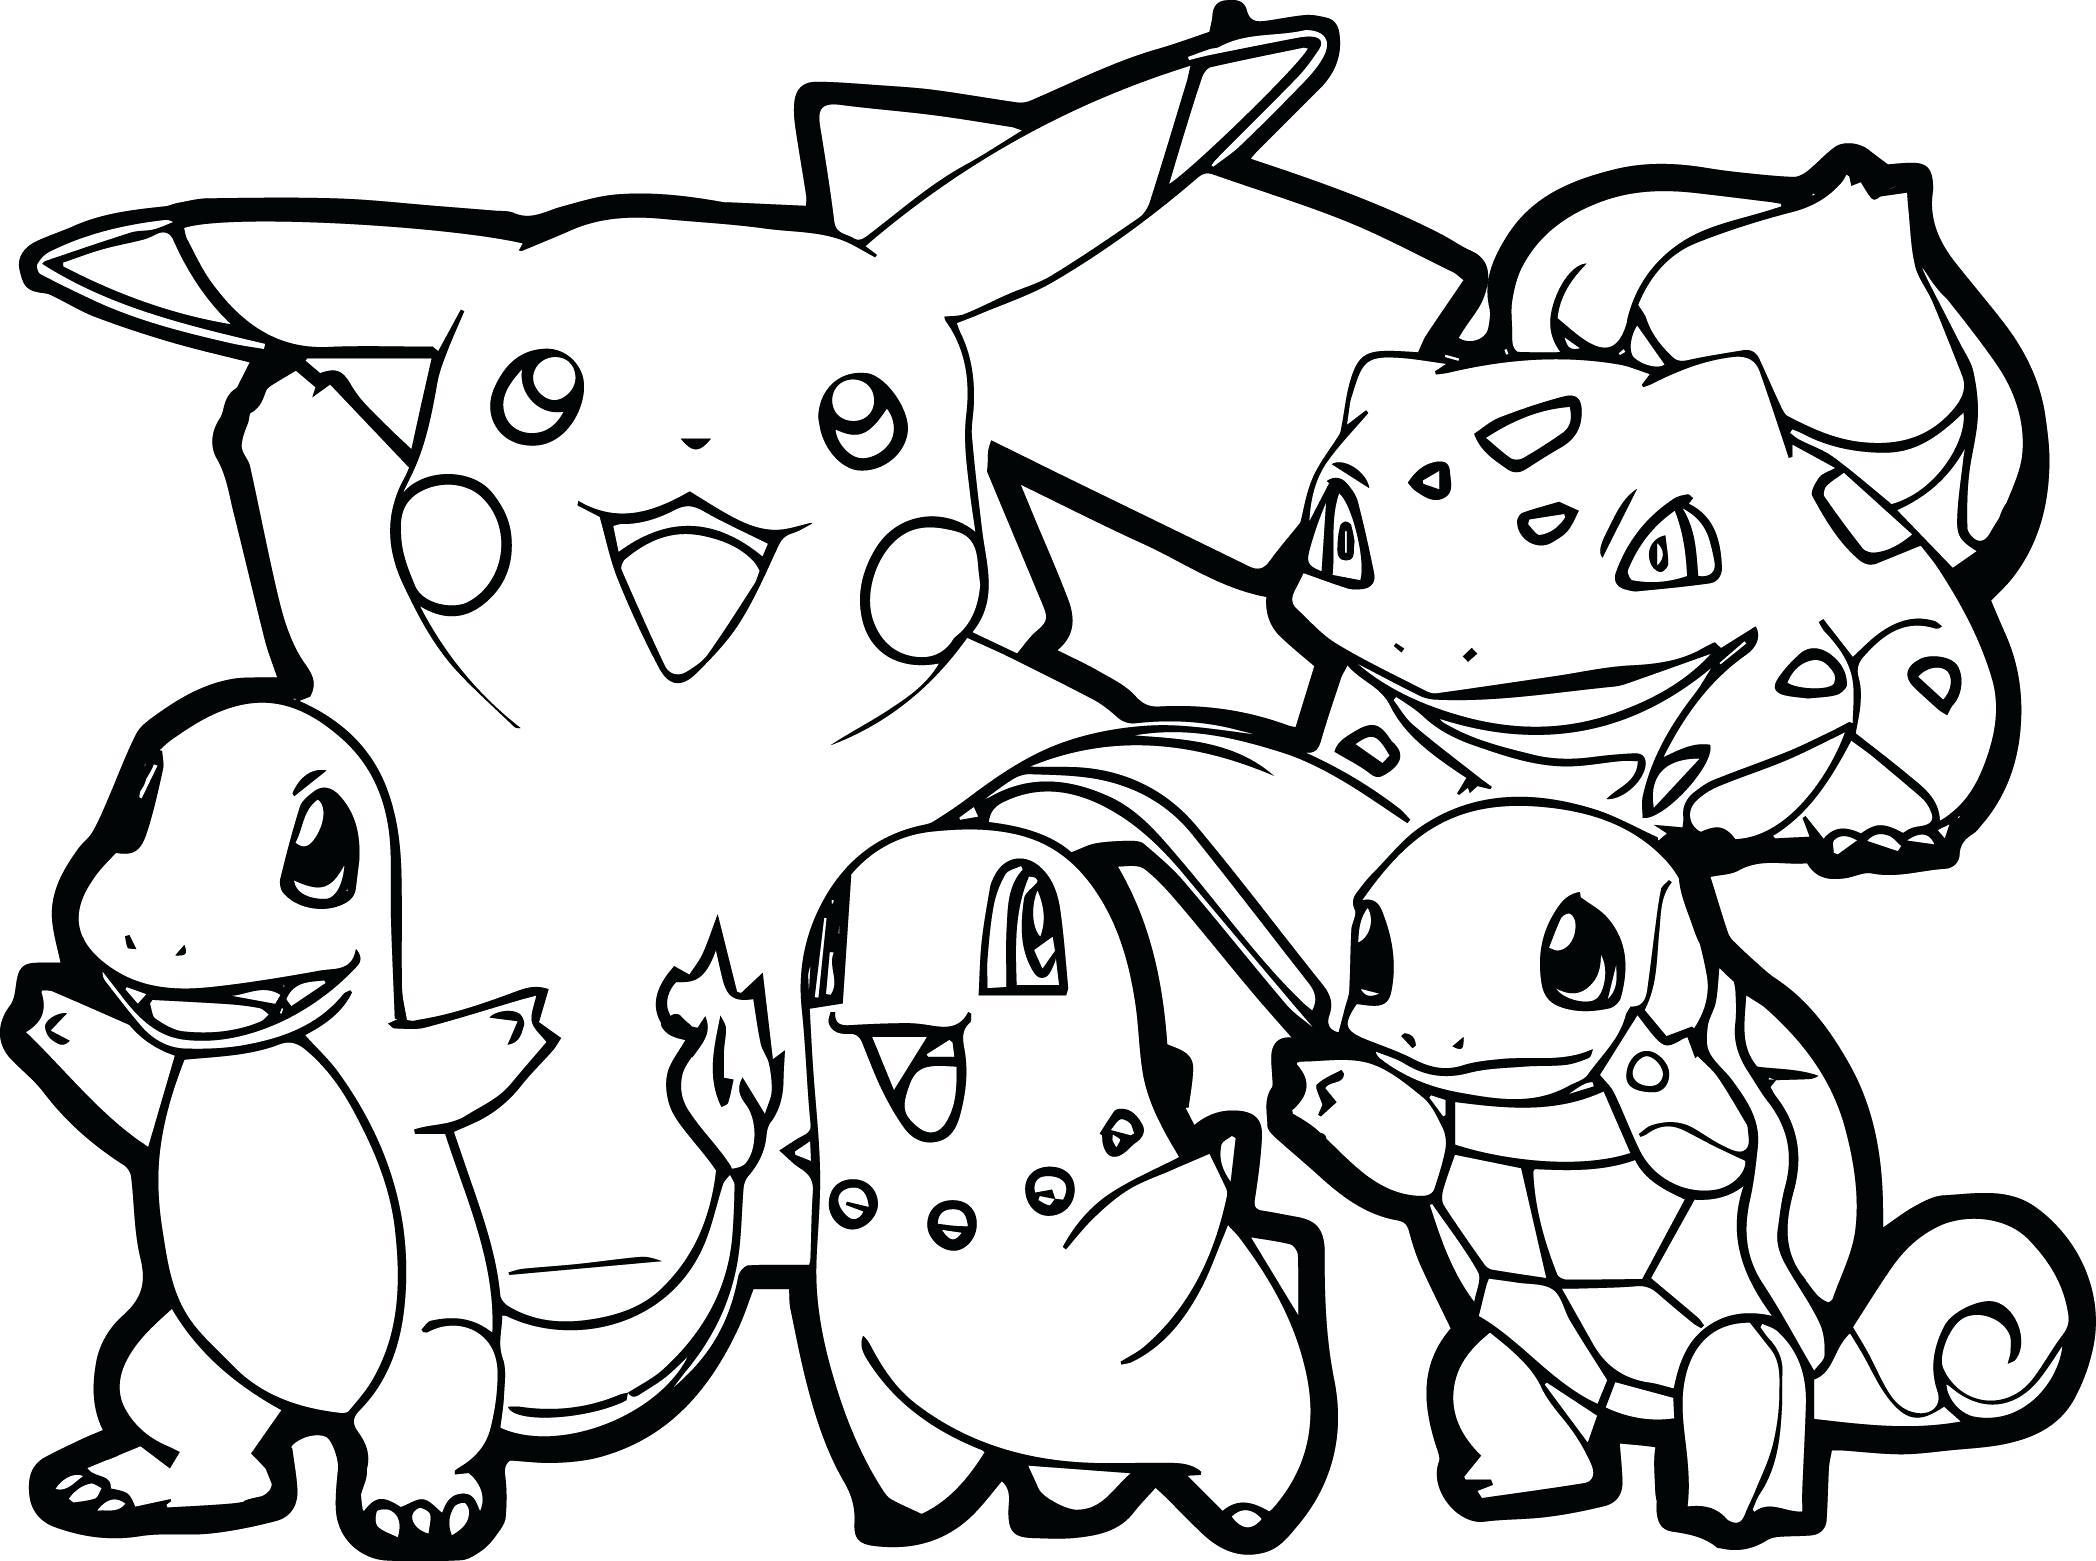 2096x1561 Pokemon Coloring Pages Ash Pokemon Coloring Pages Ash Luxury